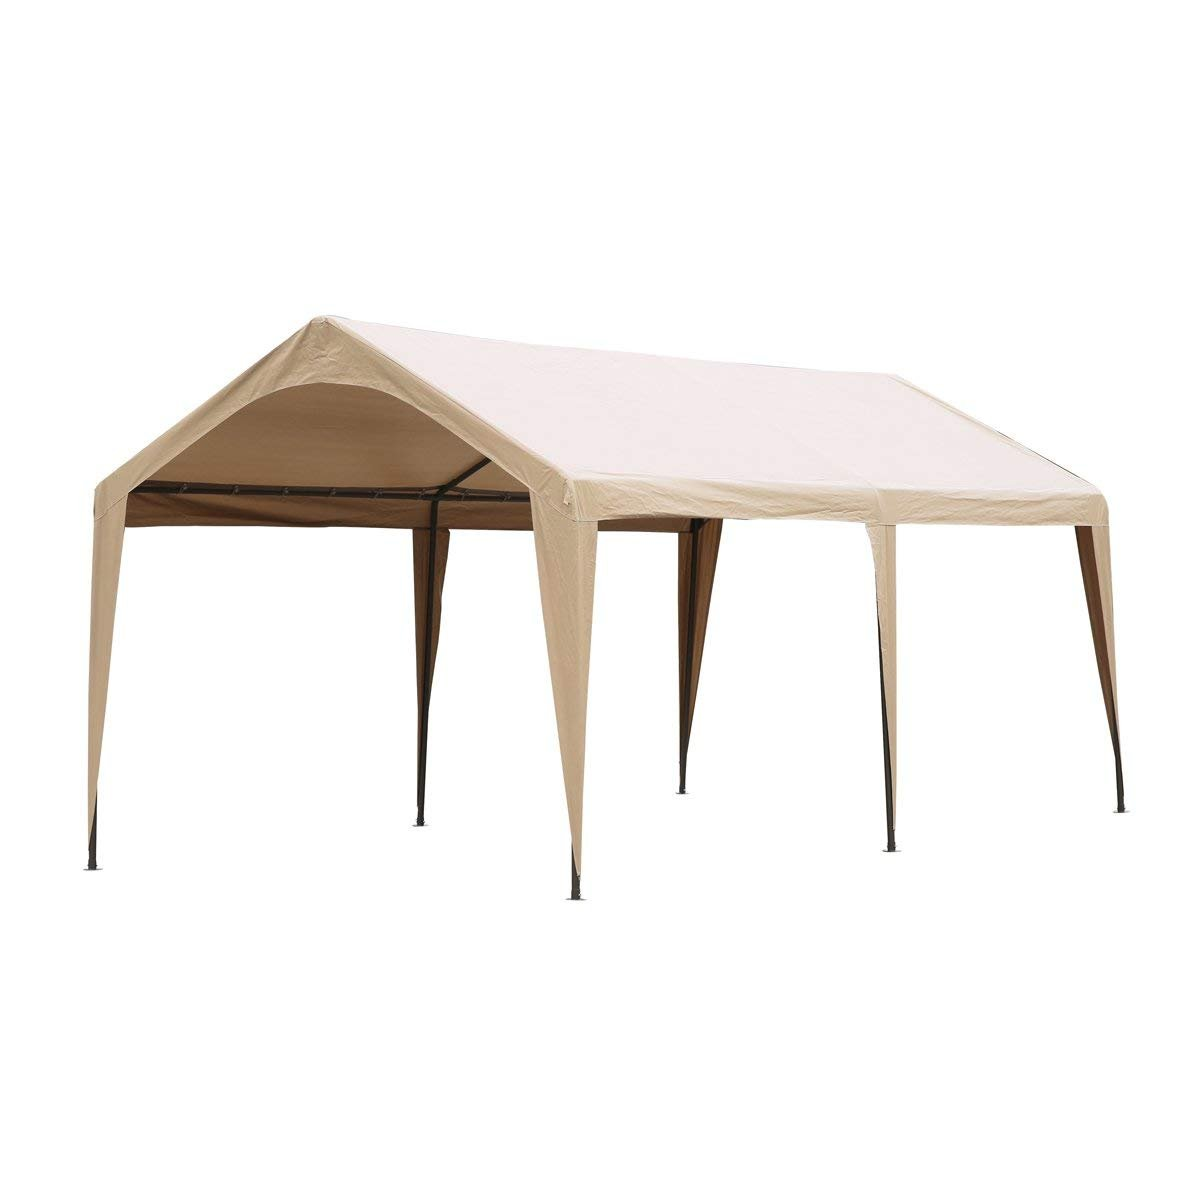 Abba Patio 10 x 20-Feet Outdoor Carport Canopy with 6 Steel Legs, Beige by Abba Patio